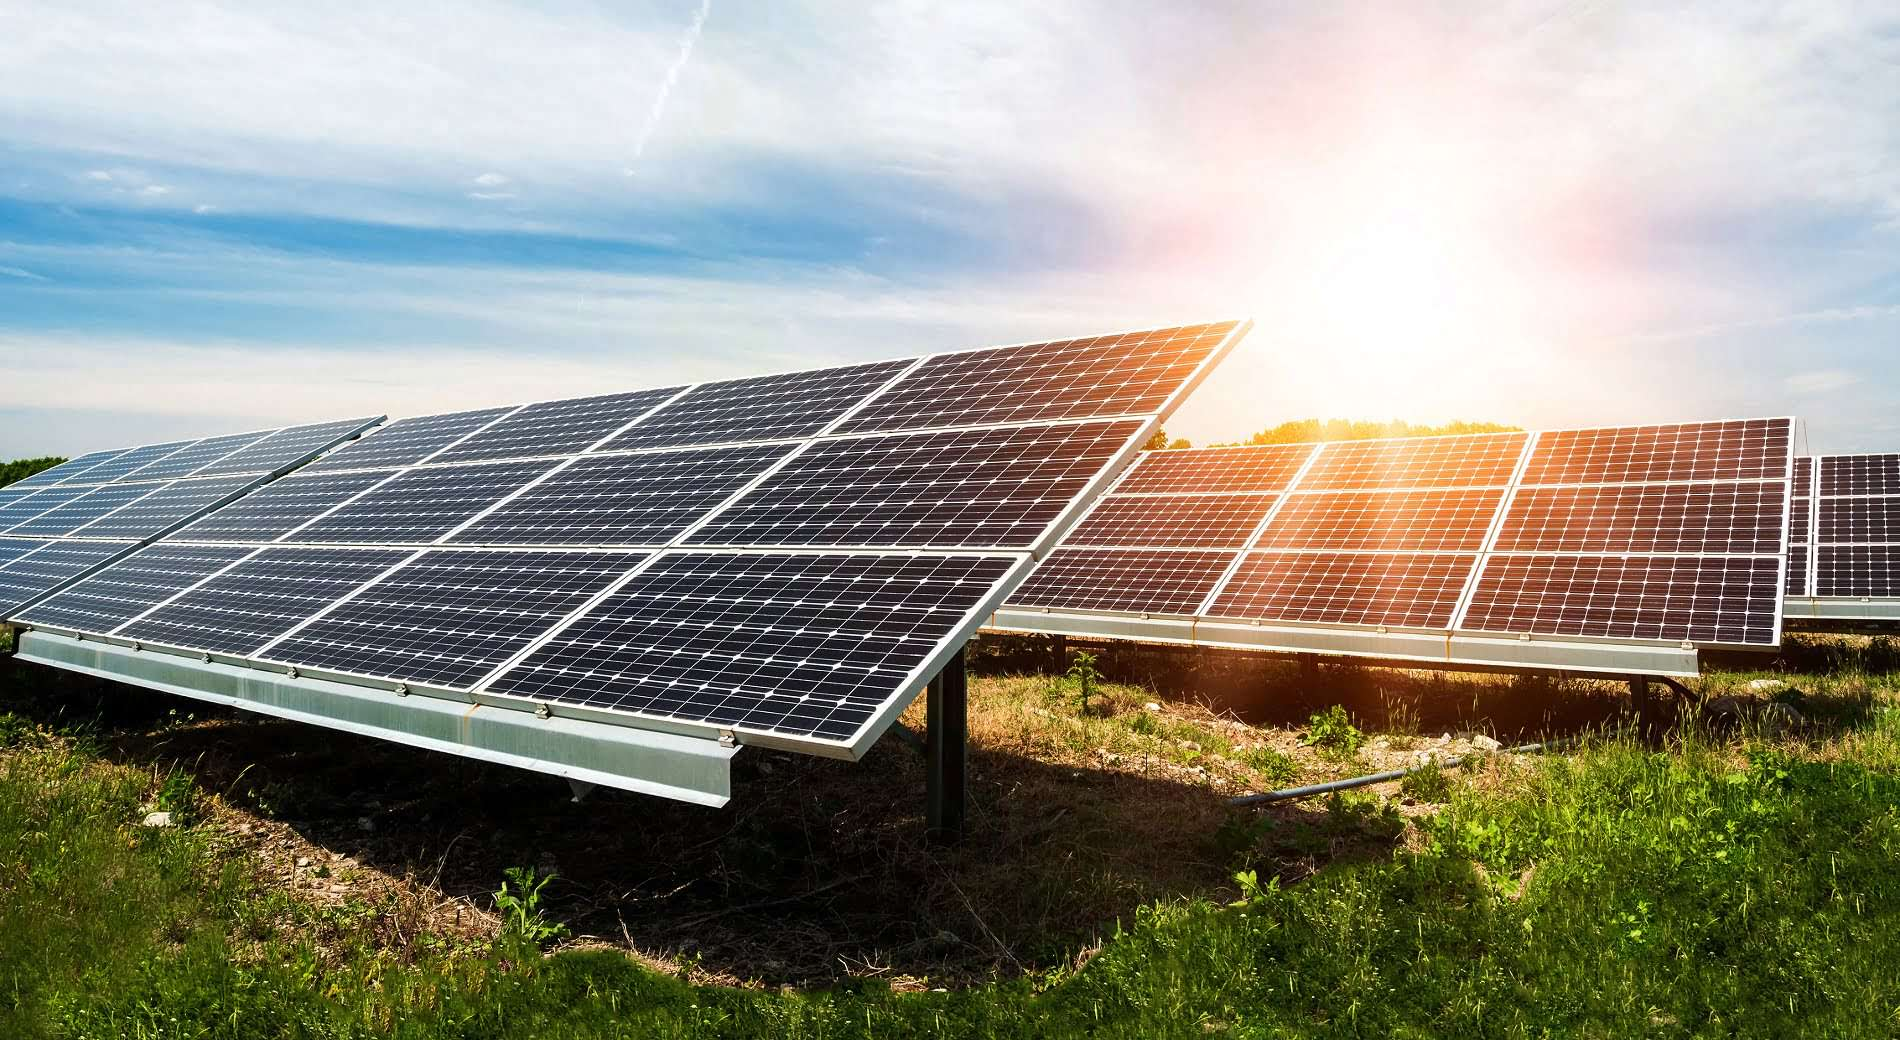 Massachusetts Property Tax Risk for Net Metered Solar Projects